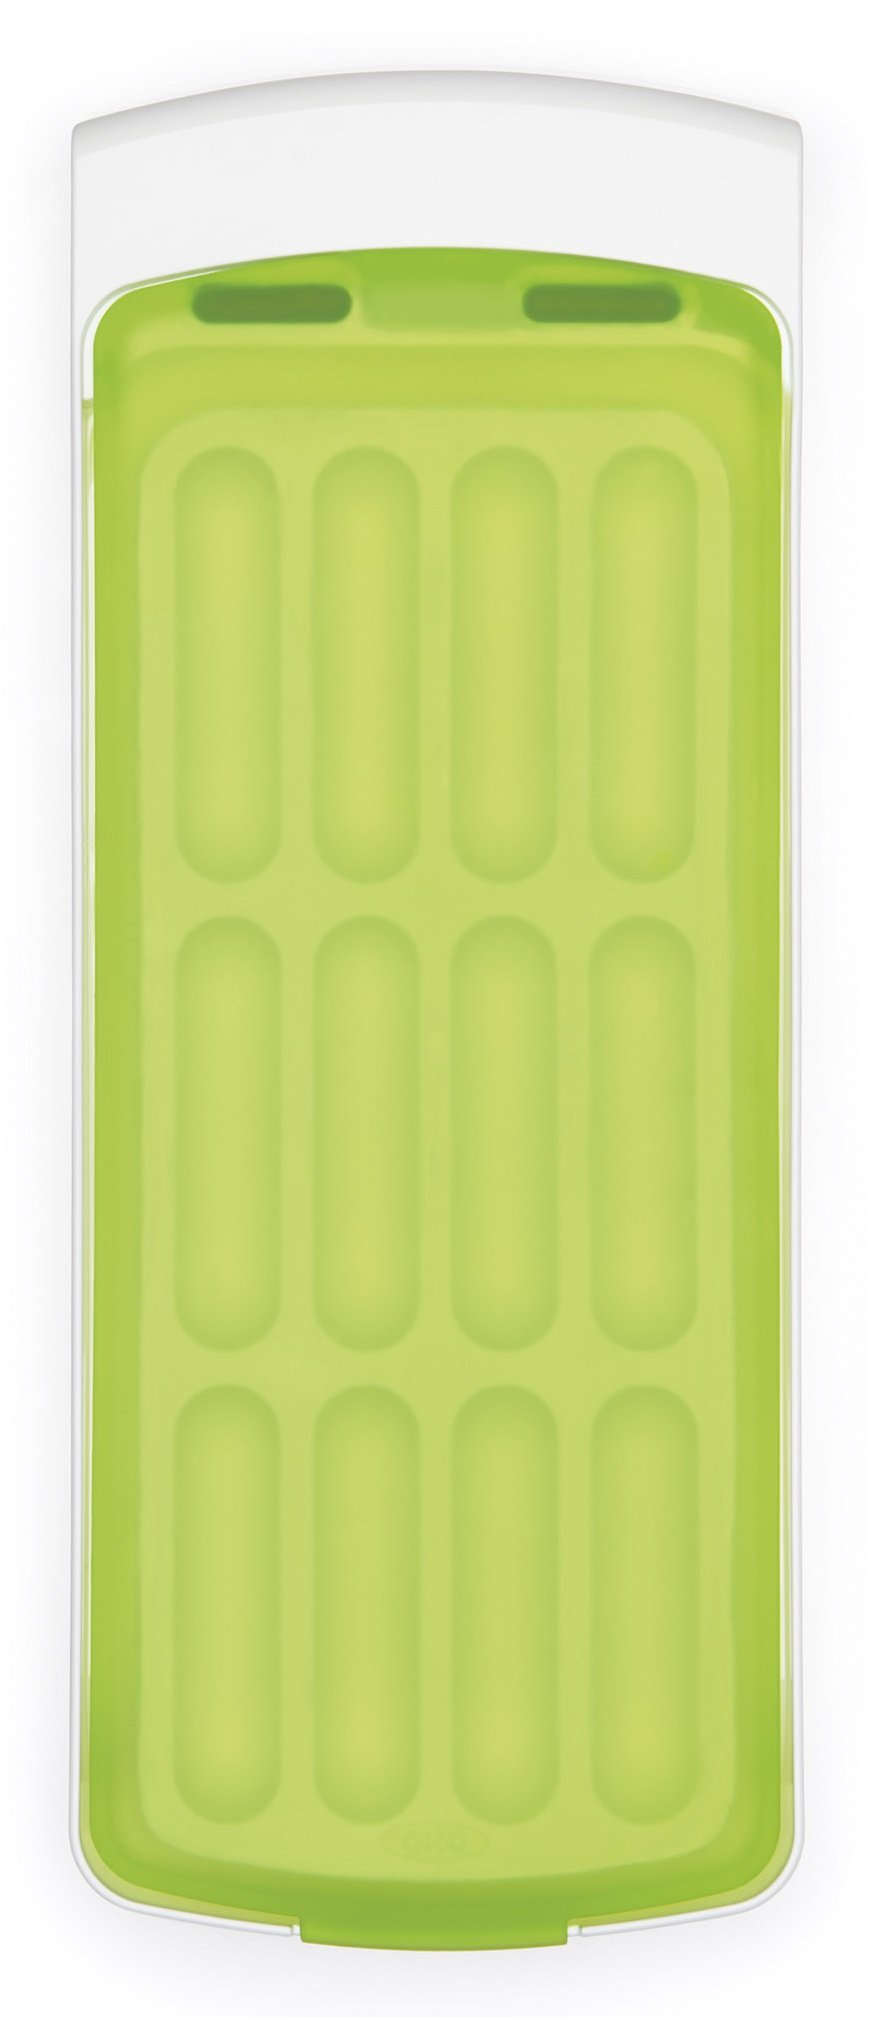 OXO 11147700 Good Grips No-Spill Silicone Ice Stick Tray for Water Bottles,Green